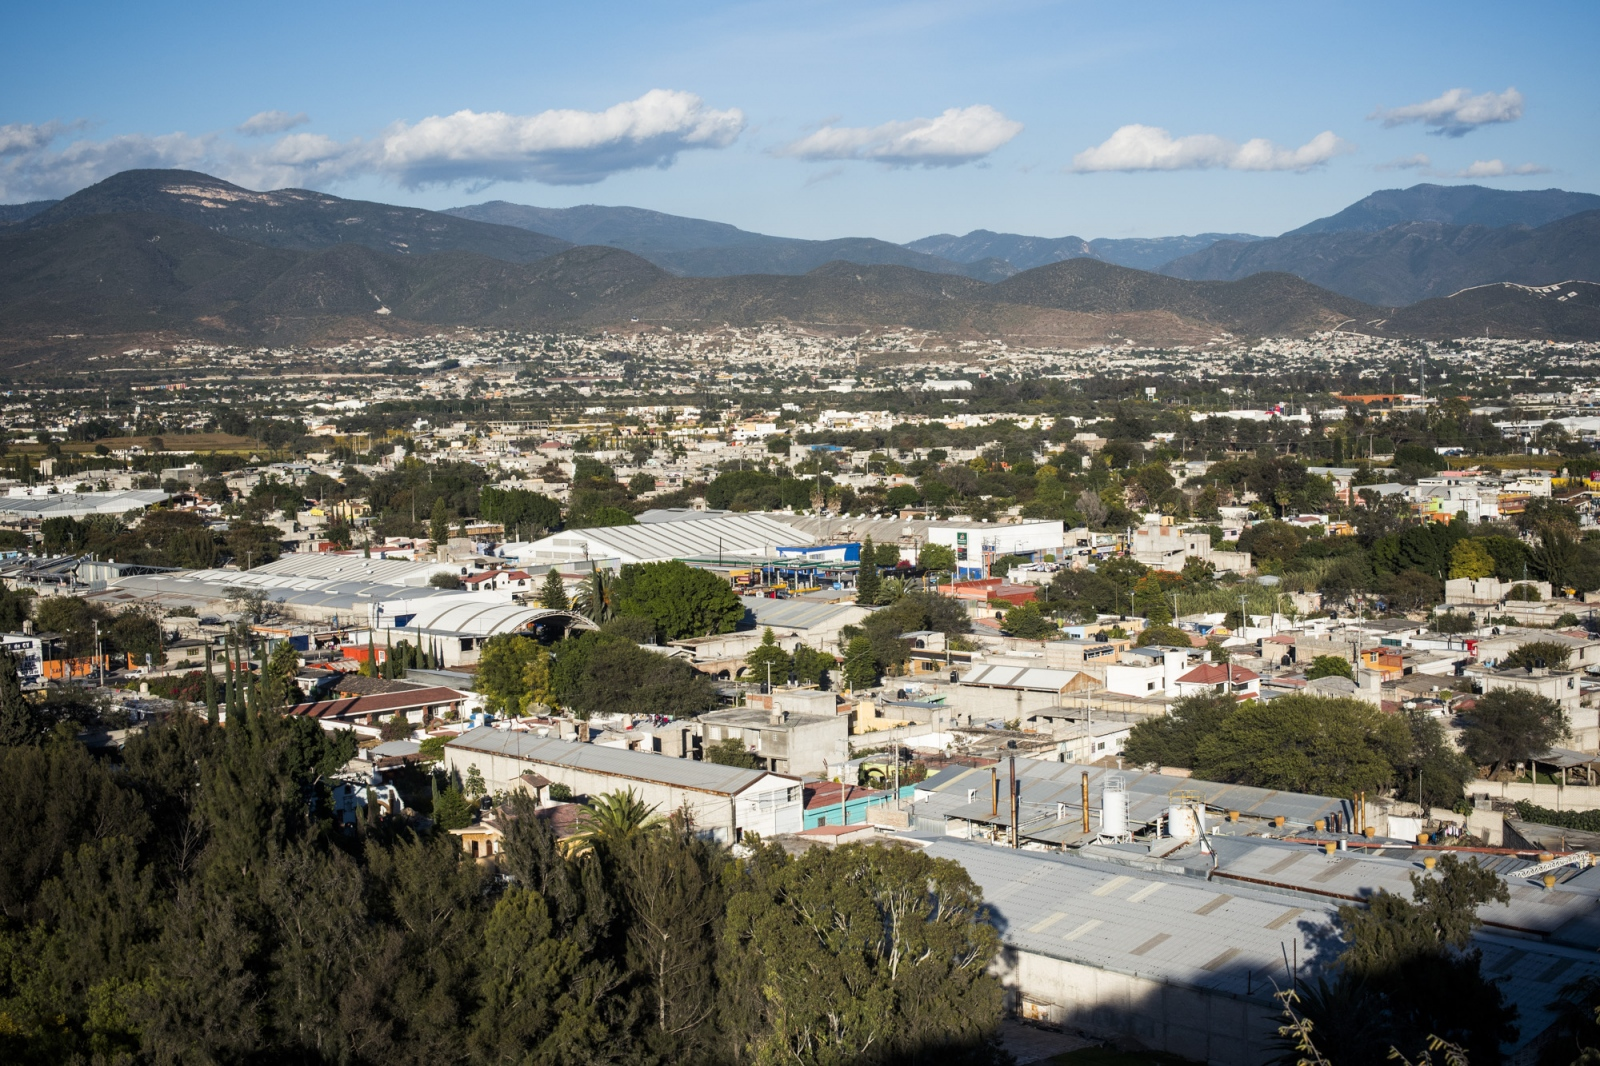 San Lorenzo Teotipilco, close to Tehuacan, where the largest number of industrial laundries is.